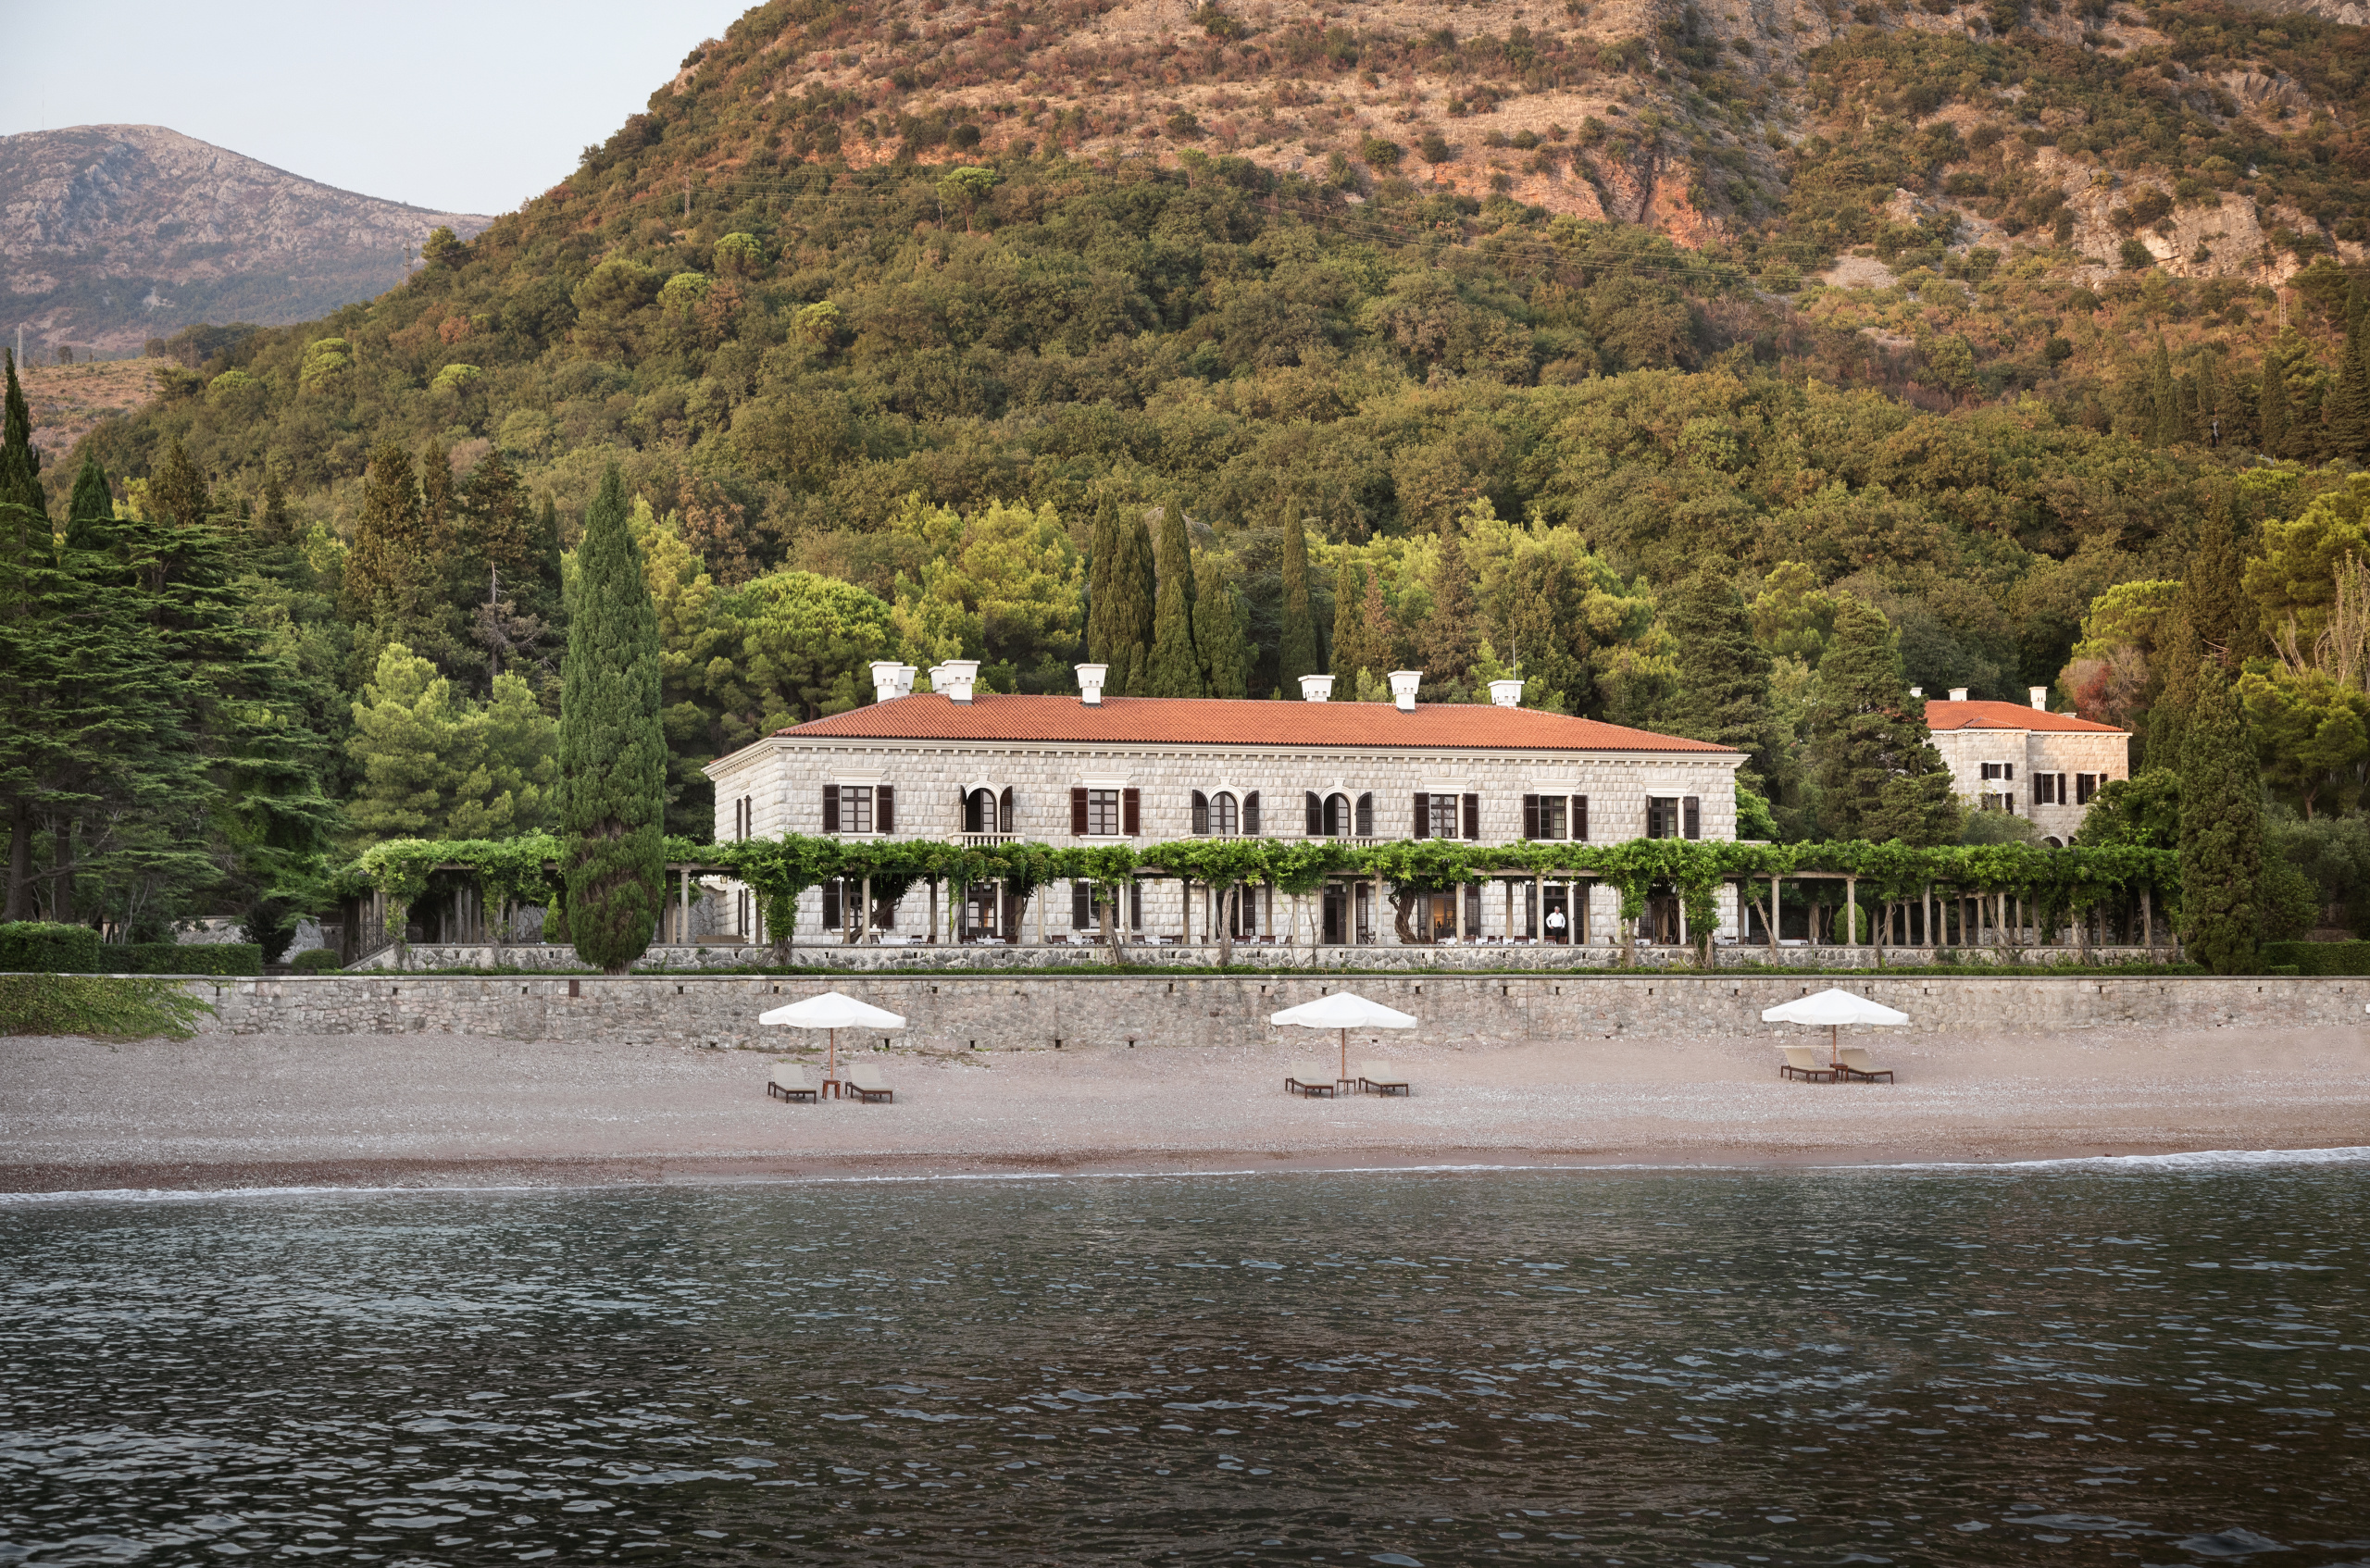 Aman located at St Stefan island